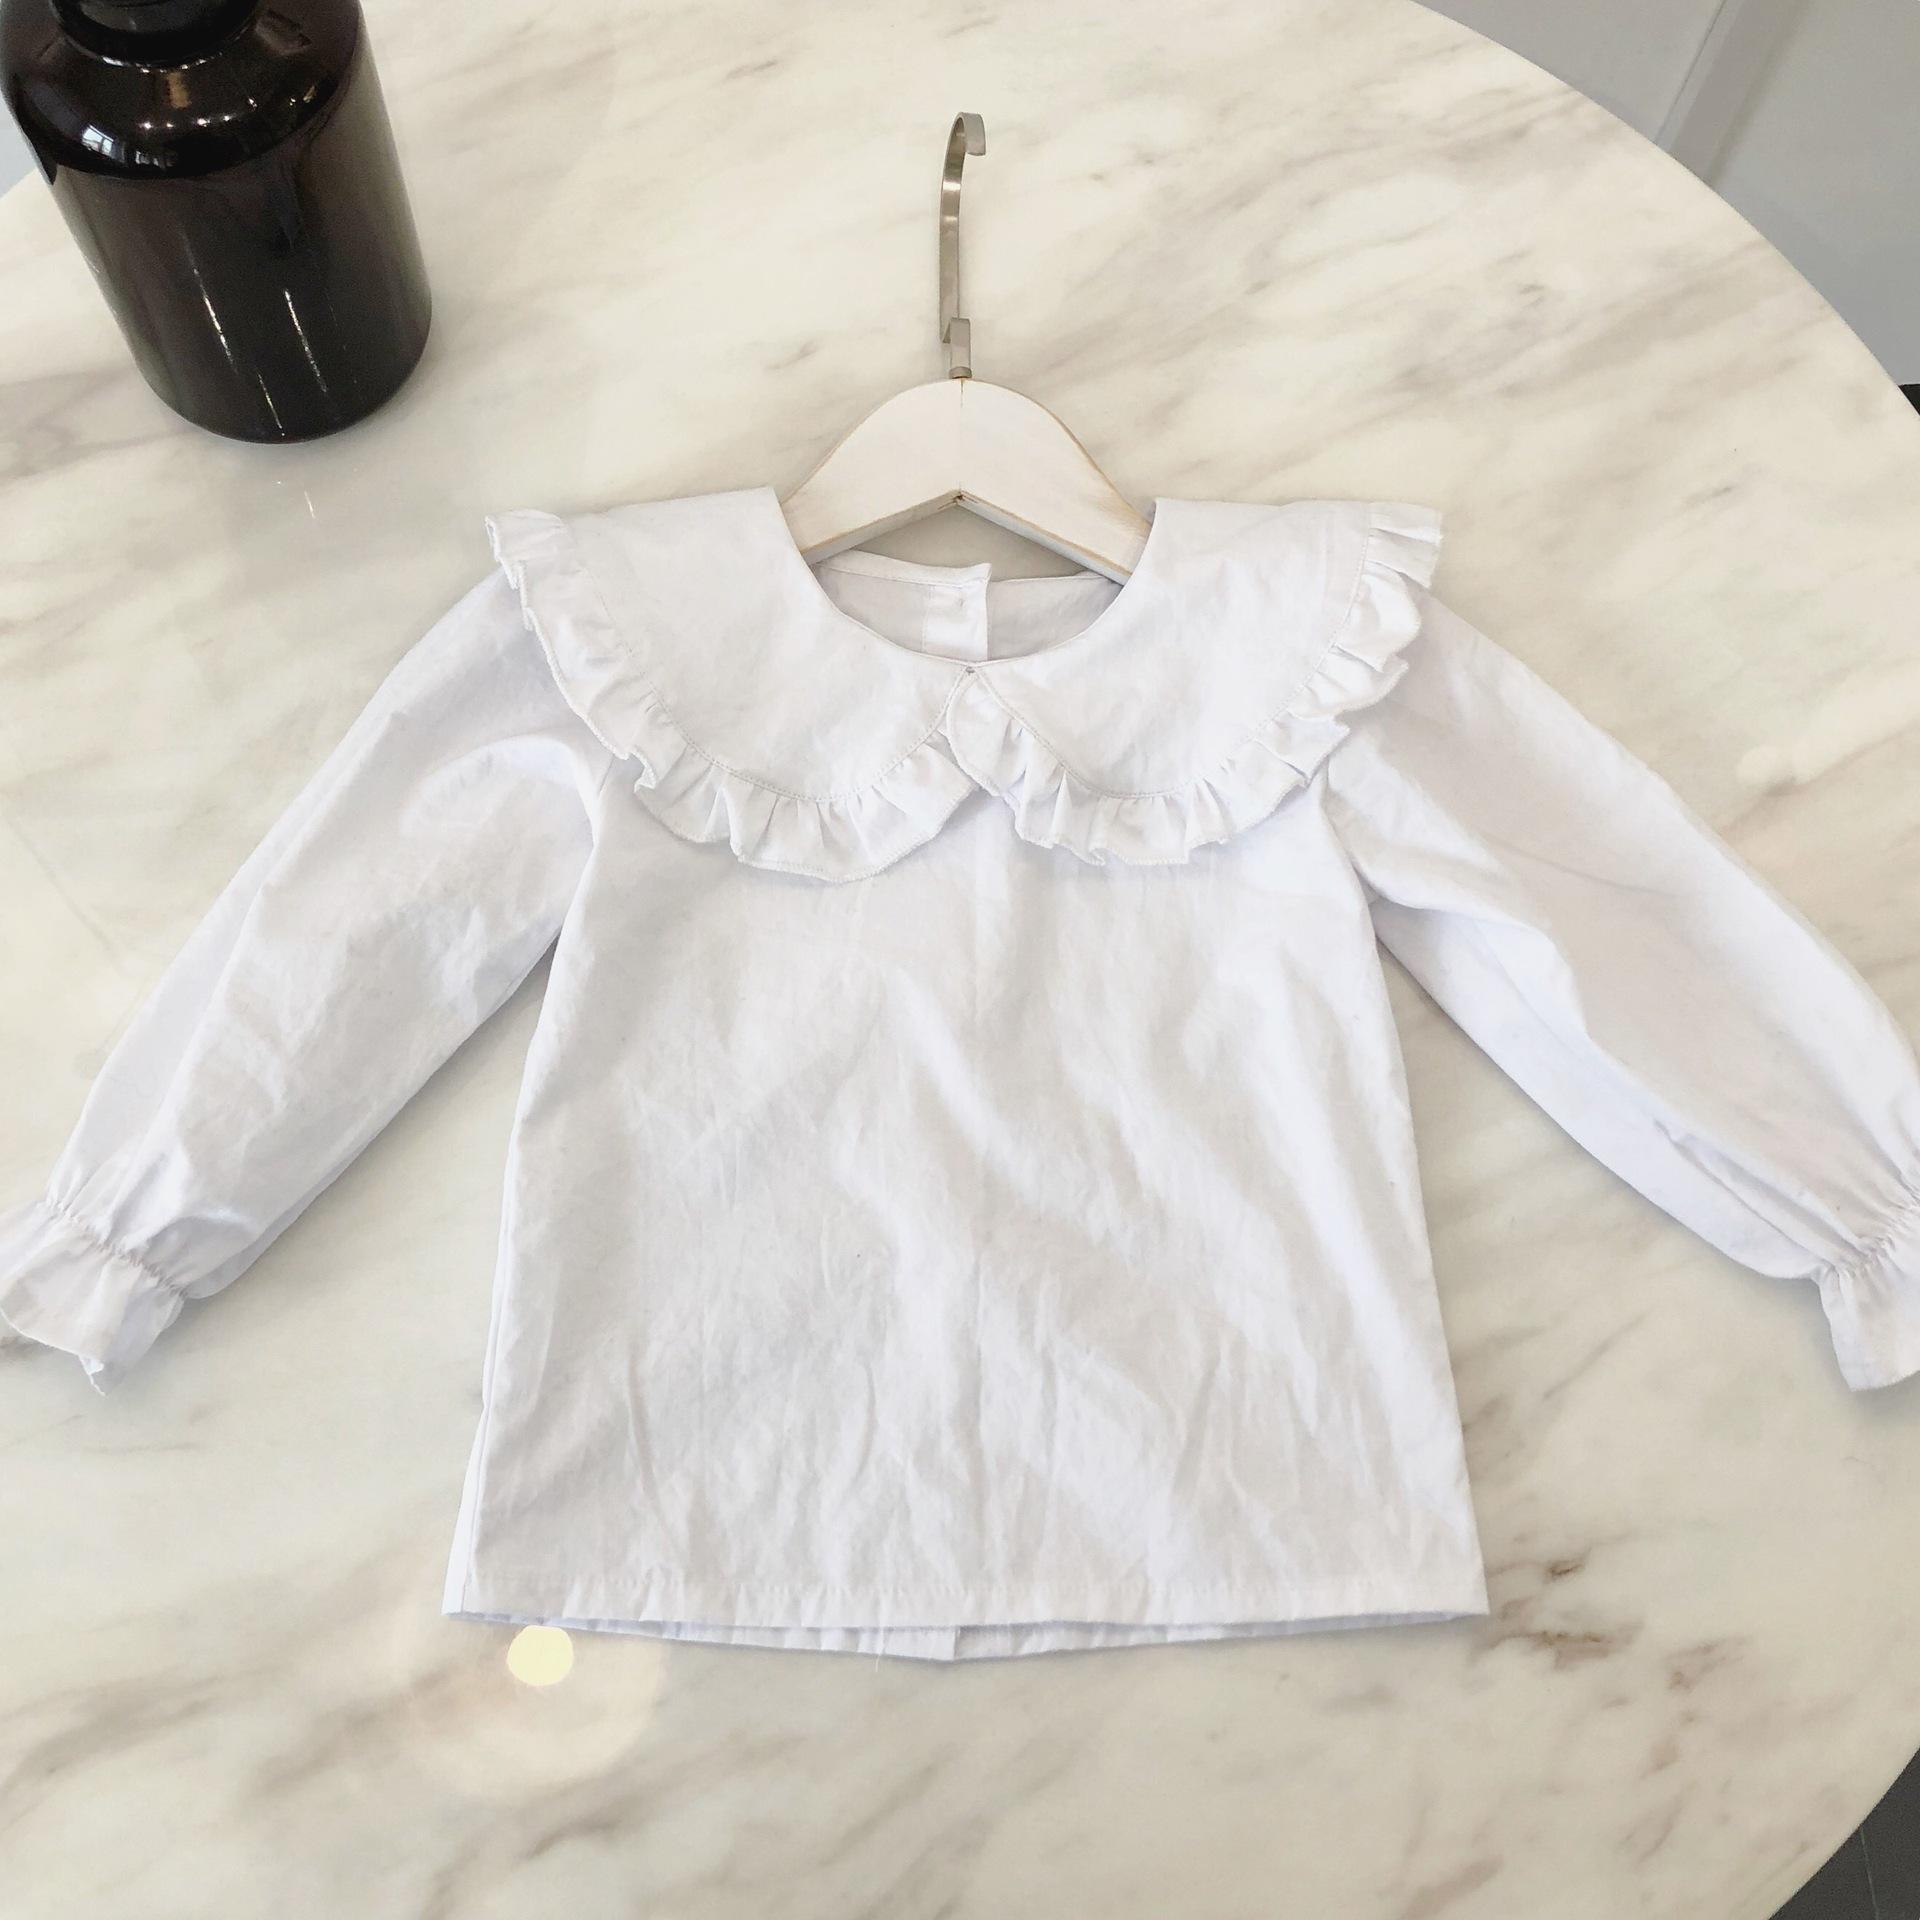 b06e8c73f73 2019 Spring Fashion Brand Quality Children Clothing Baby Girl Long Sleeve  Solid White Blouse Kids Ruffle Blouse Tops Clothes Online with  39.26 Piece  on ...